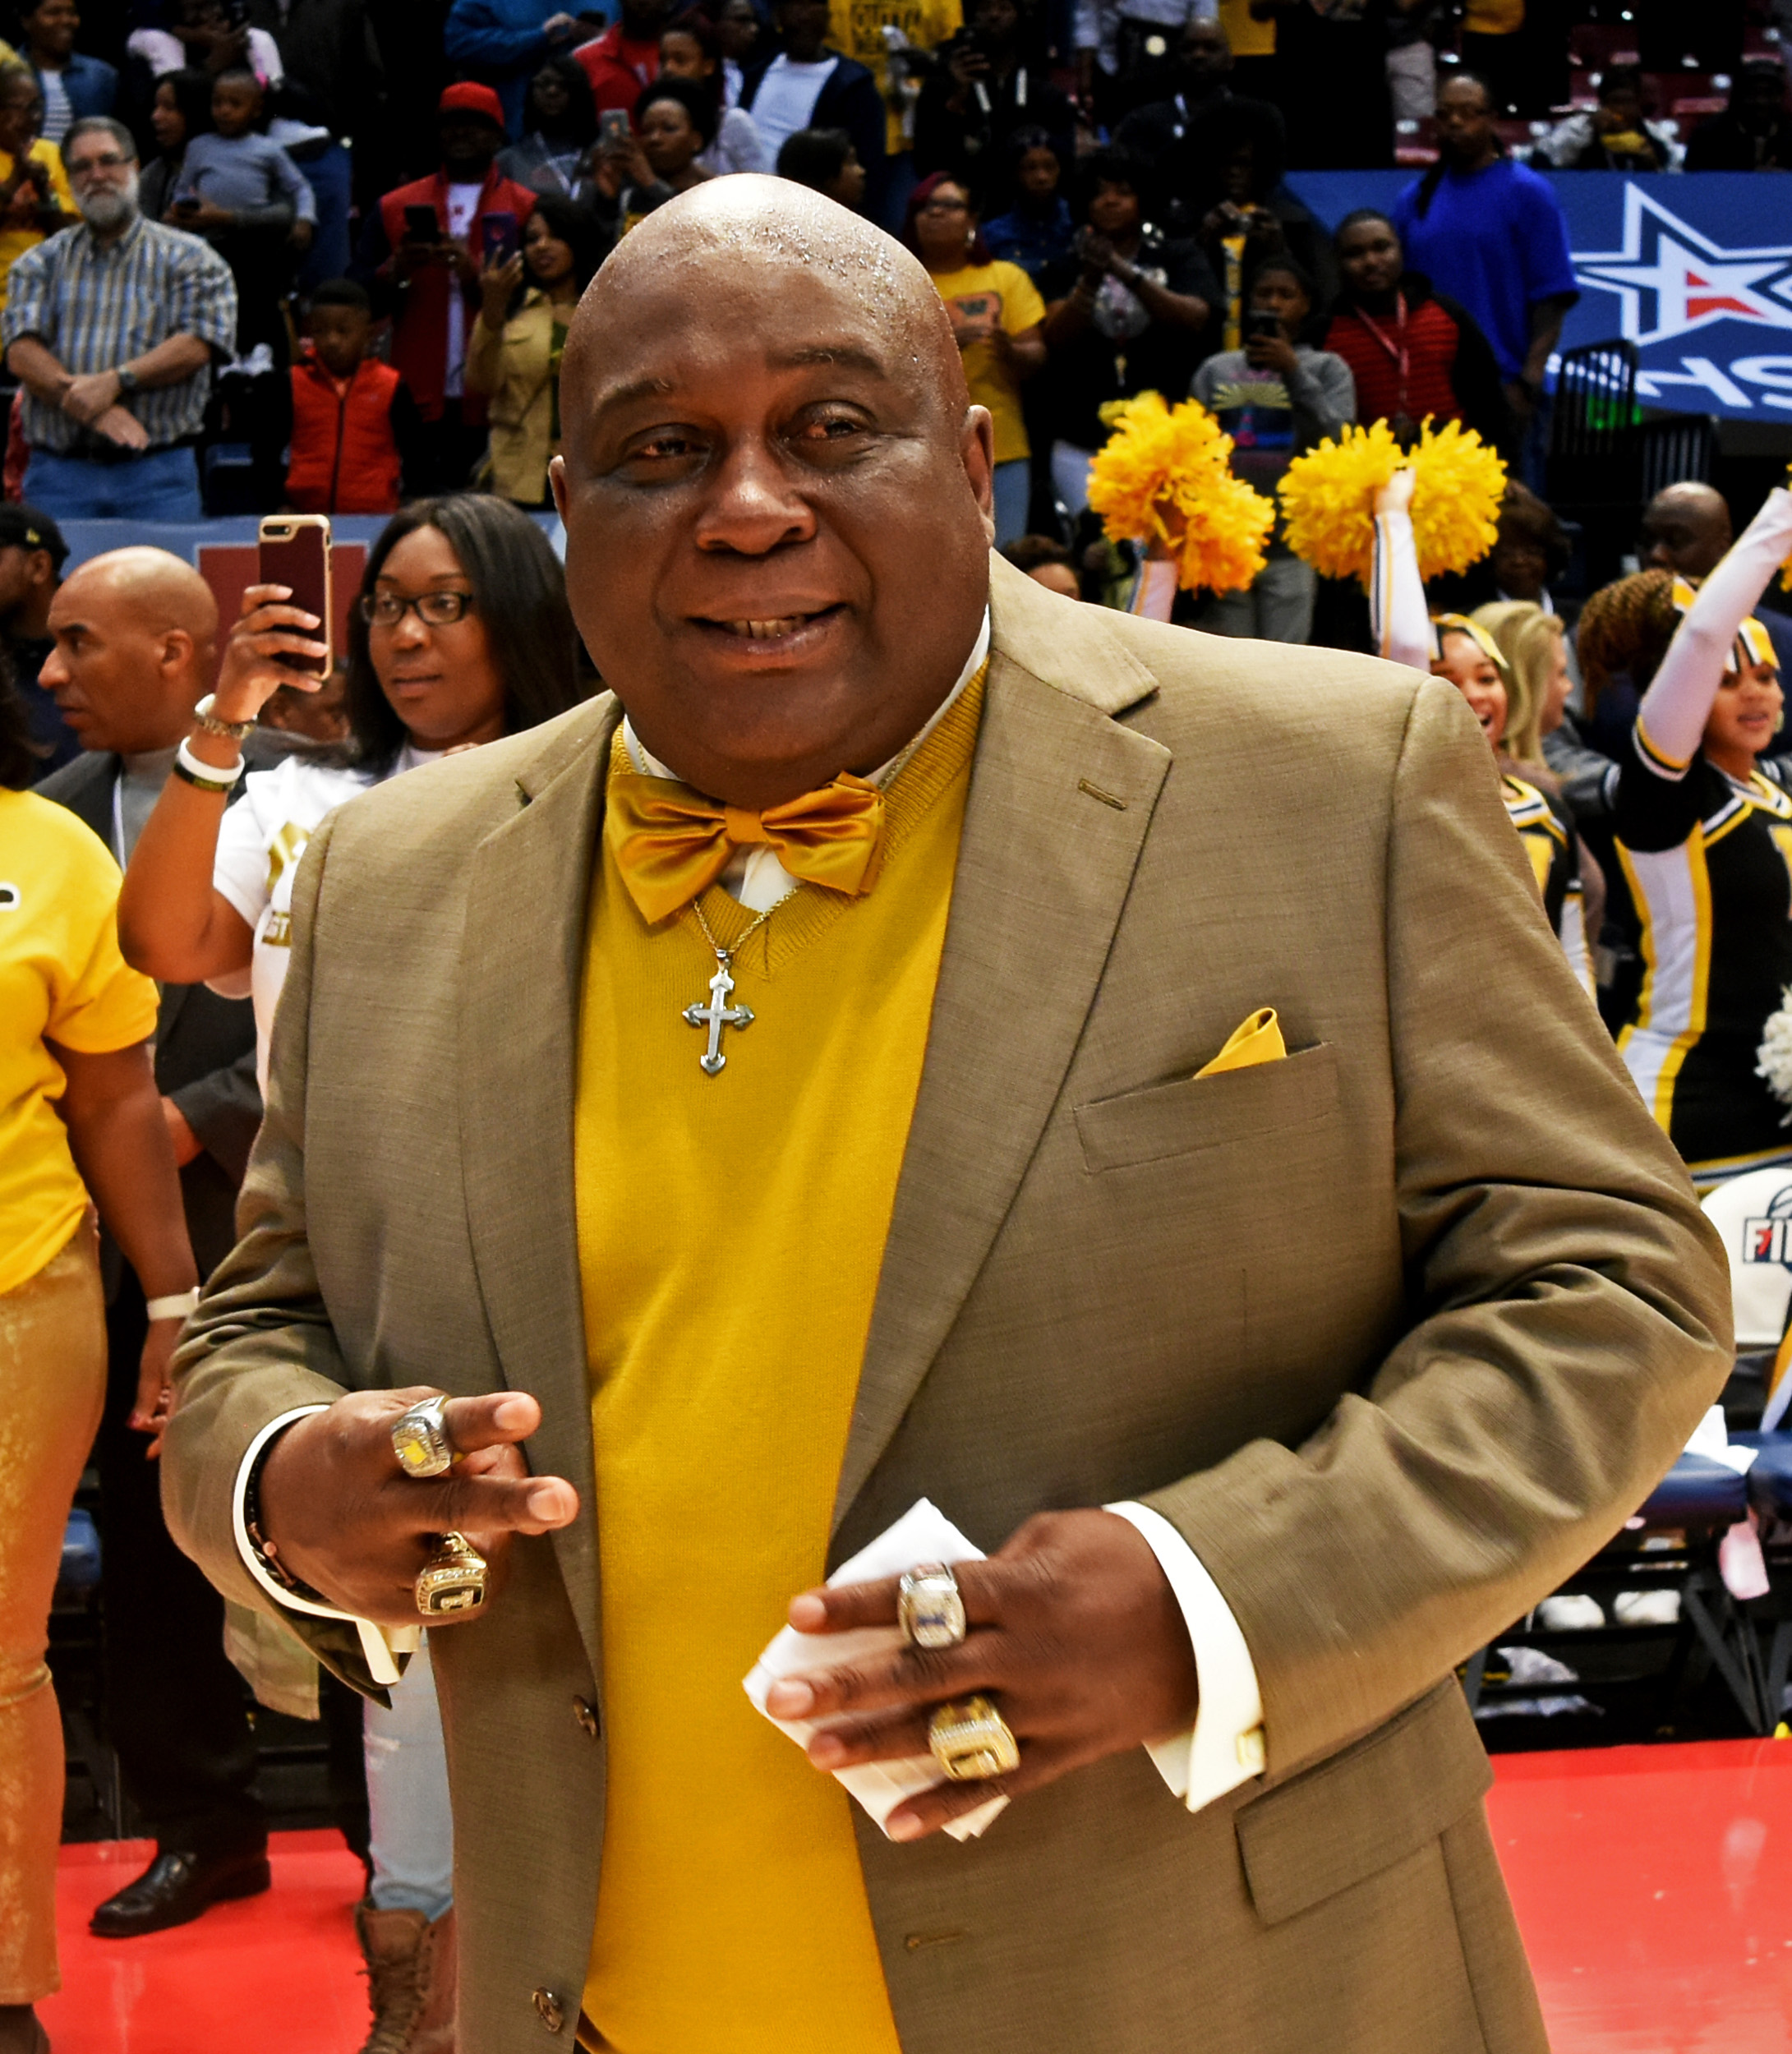 Coach Emanuel Bell led the Wenonah Girls' High School basketball to the Class 5A state basketball title for the fourth straight year in 2017. Coach Bell is battling lung cancer. (Solomon Crenshaw Jr./For The Birmingham Times).